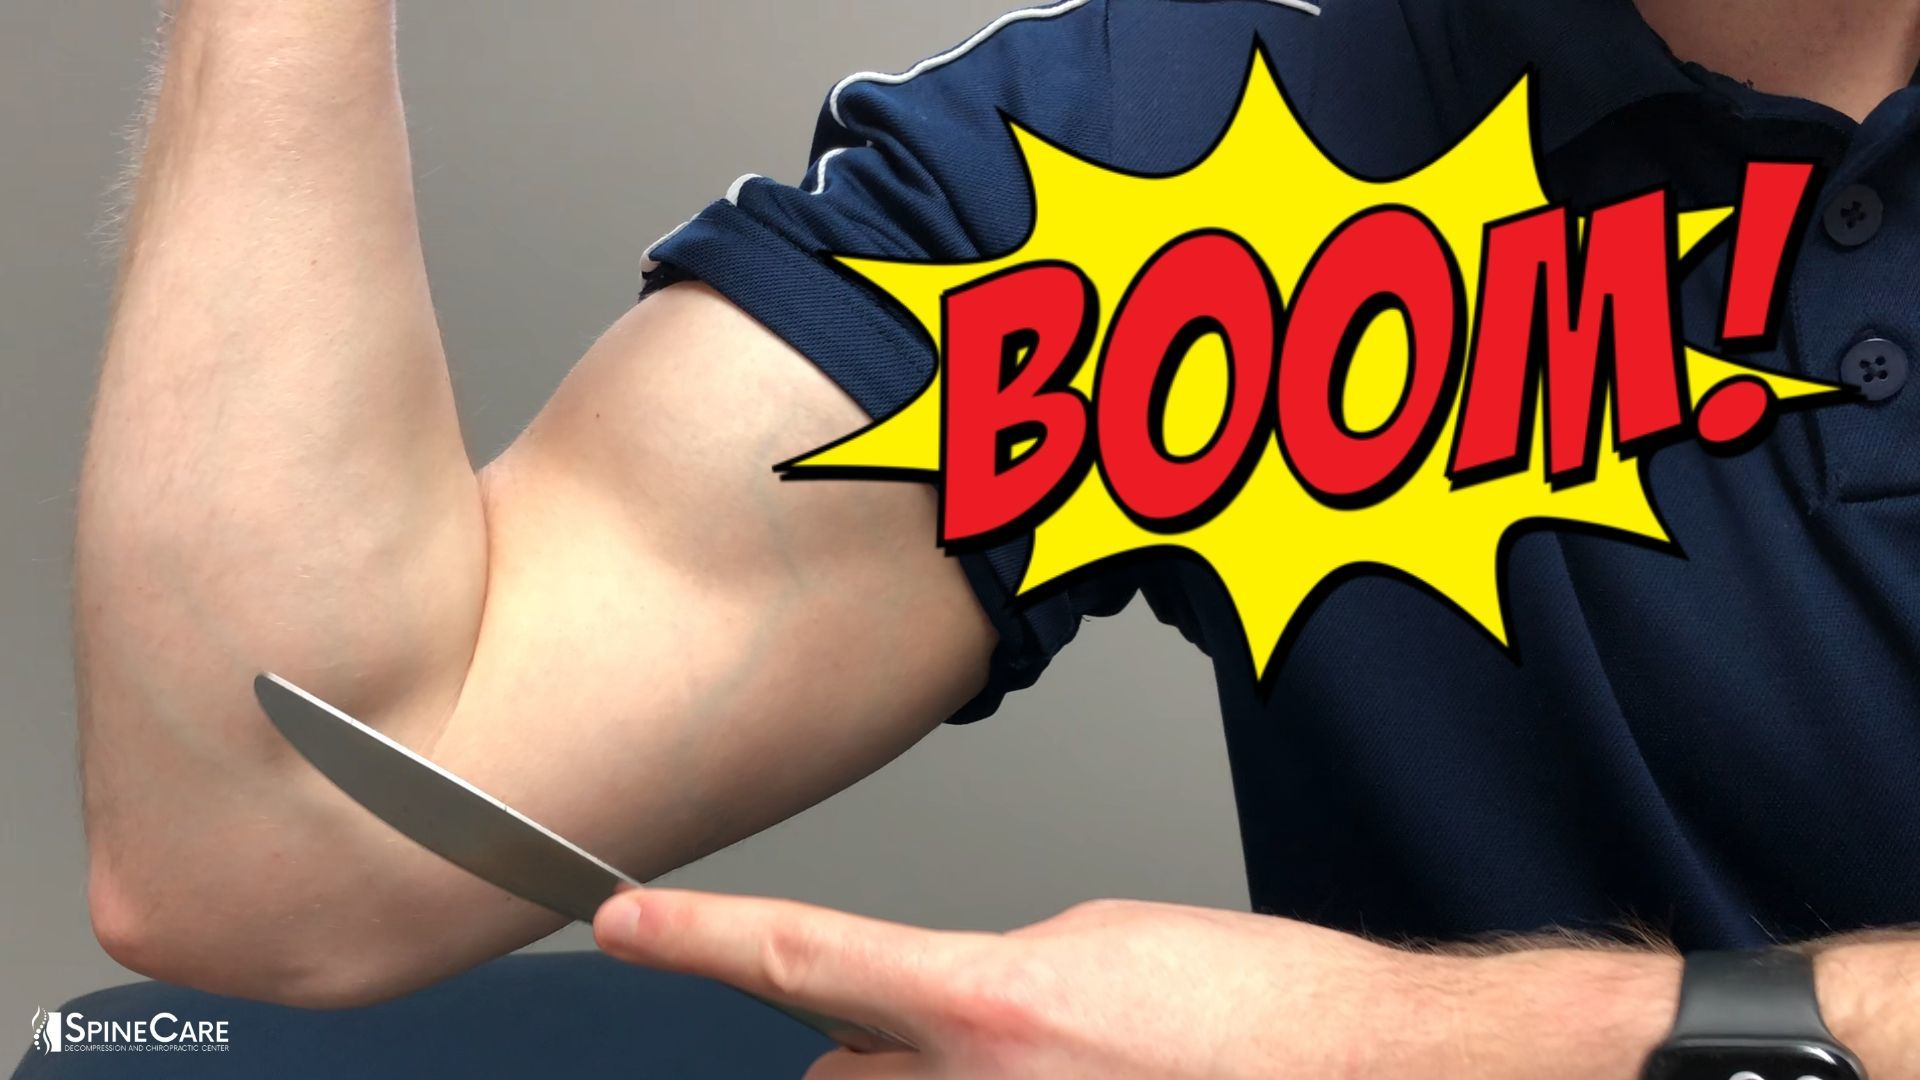 Fast Elbow Pain Relief Fix (Using Just a BUTTER KNIFE!) | SpineCare St. Joseph, MI Chiropractor